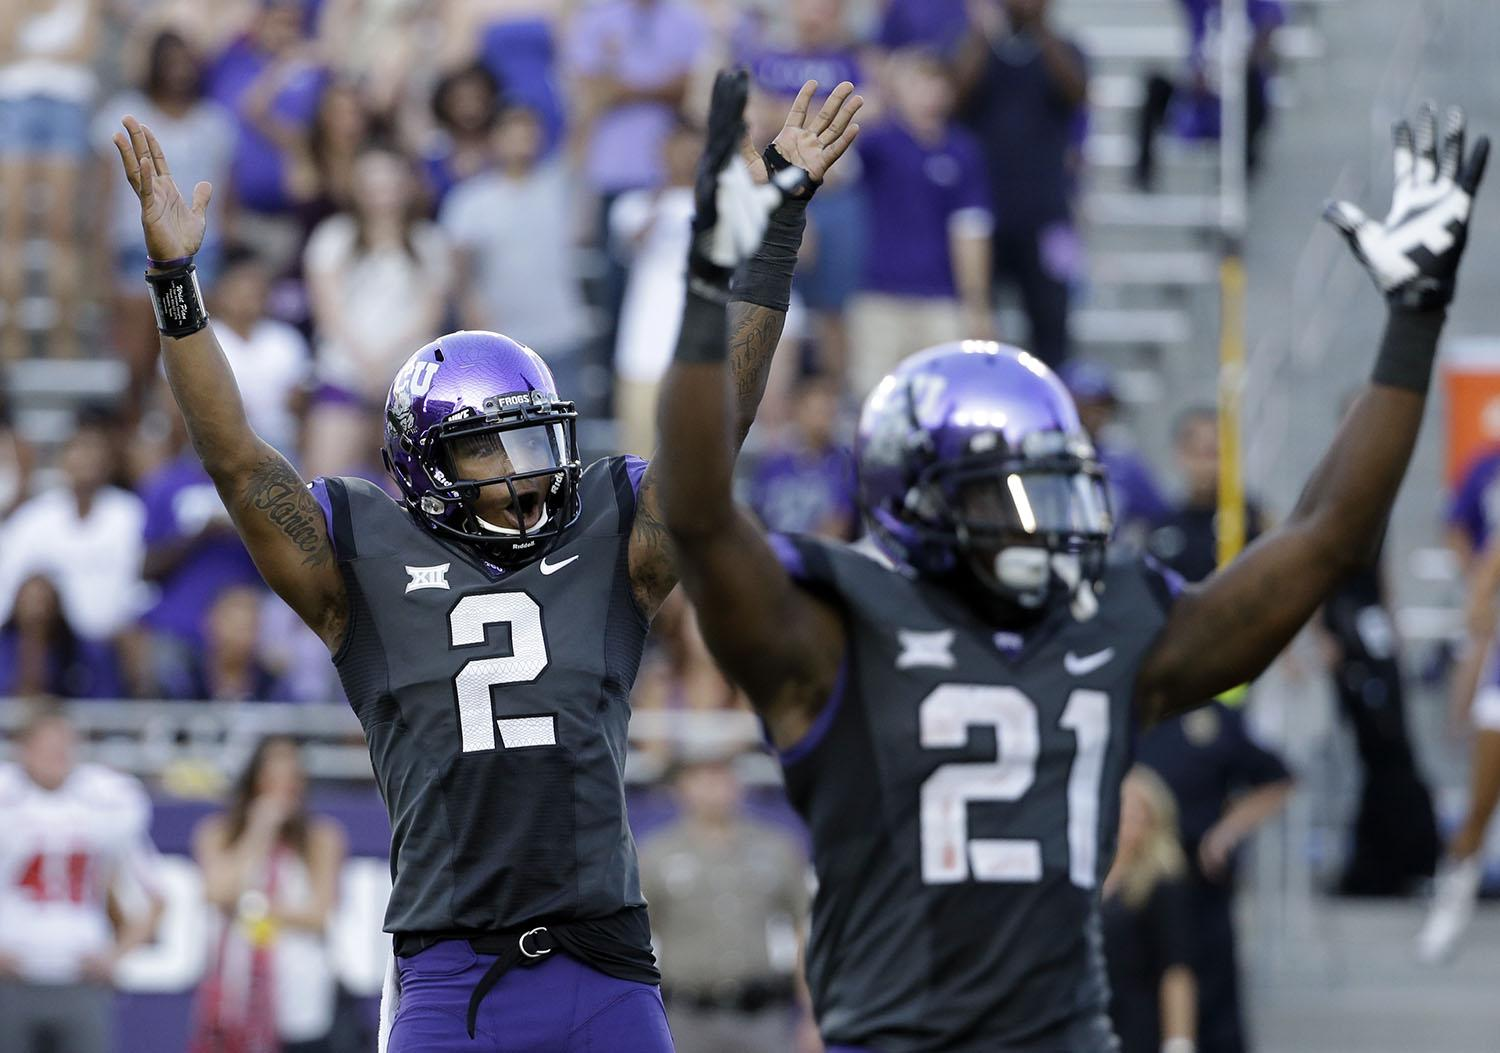 In this Oct. 25, 2014, file photo, TCU quarterback Trevone Boykin (2) and running back Kyle Hicks (21) celebrate after a touchdown against Texas Tech in the second half of an NCAA college football game in Fort Worth, Texas. TCU won 82-27. All that scoring caused this season's average length of game to hit 3 hours, 23 minutes in late November, according to the NCAA. (AP Photo/Tony Gutierrez, File)